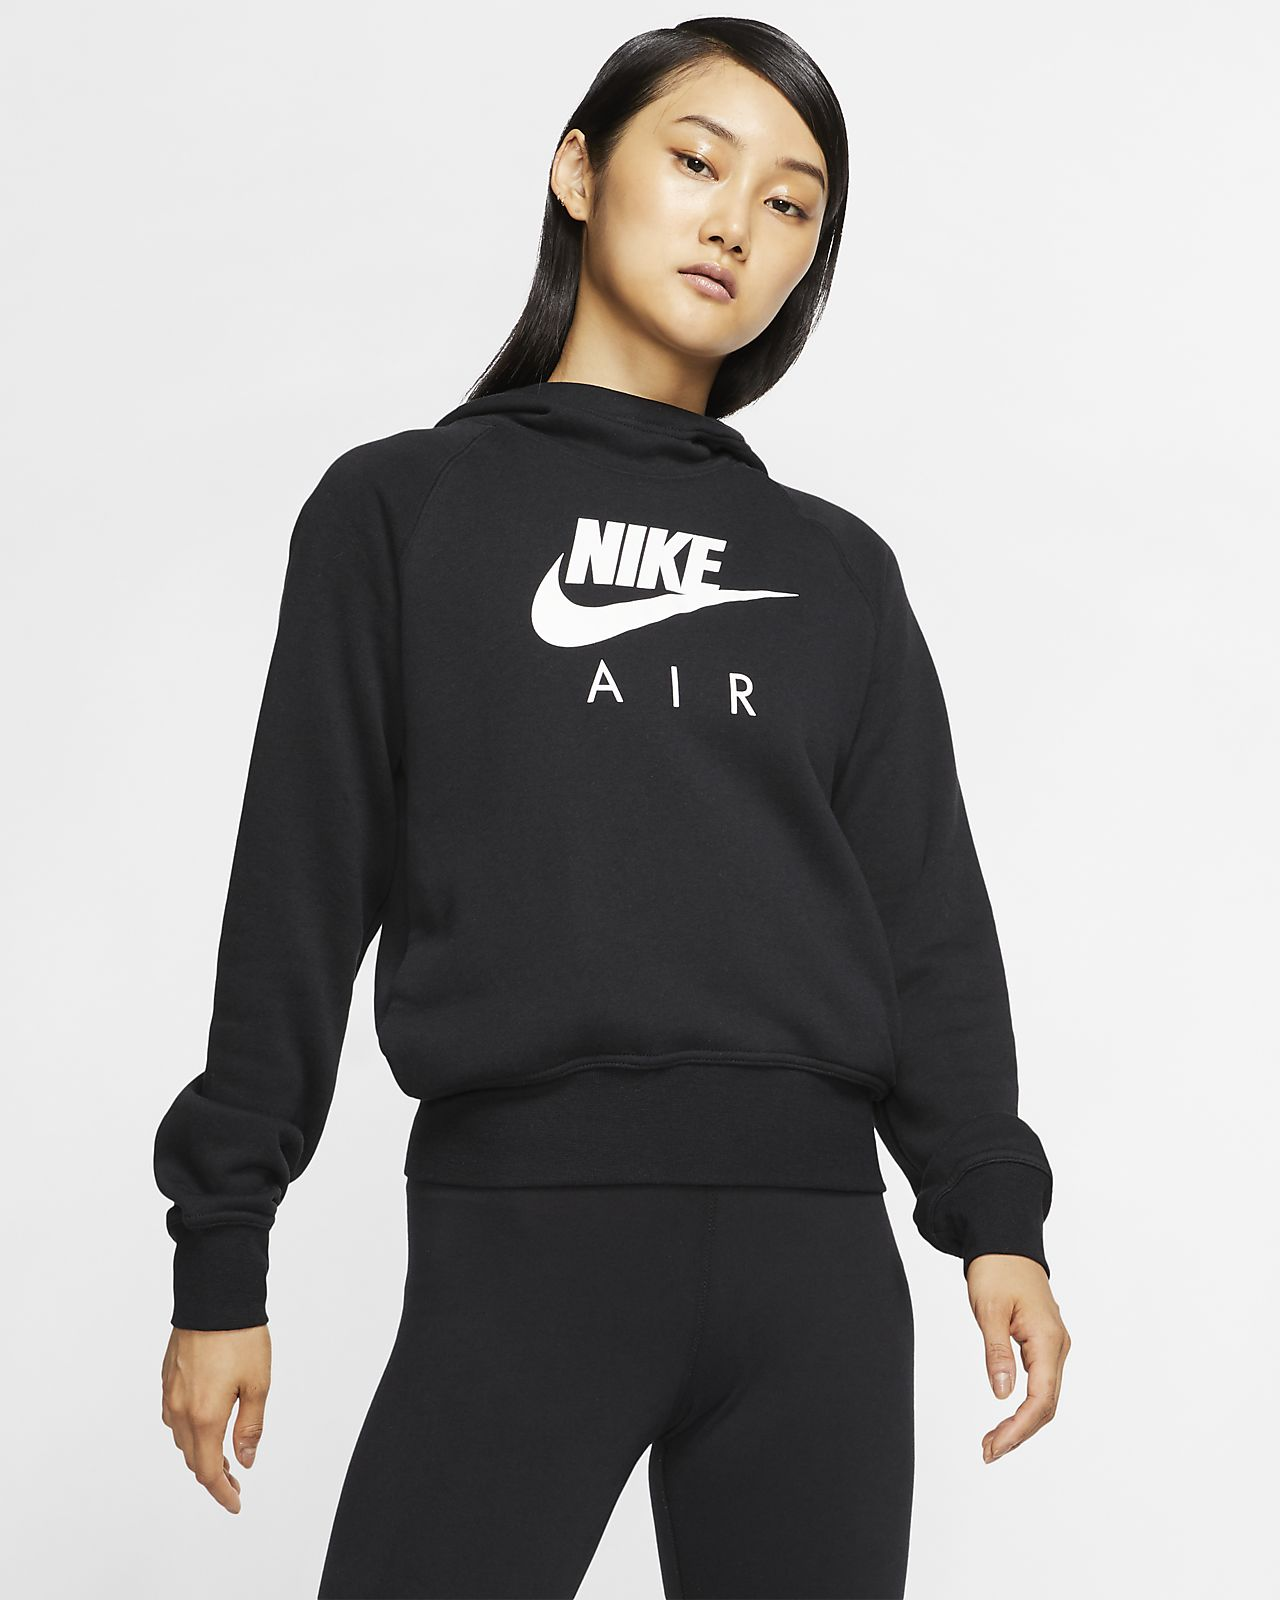 sale online hot new products top fashion Nike Air Women's Hoodie